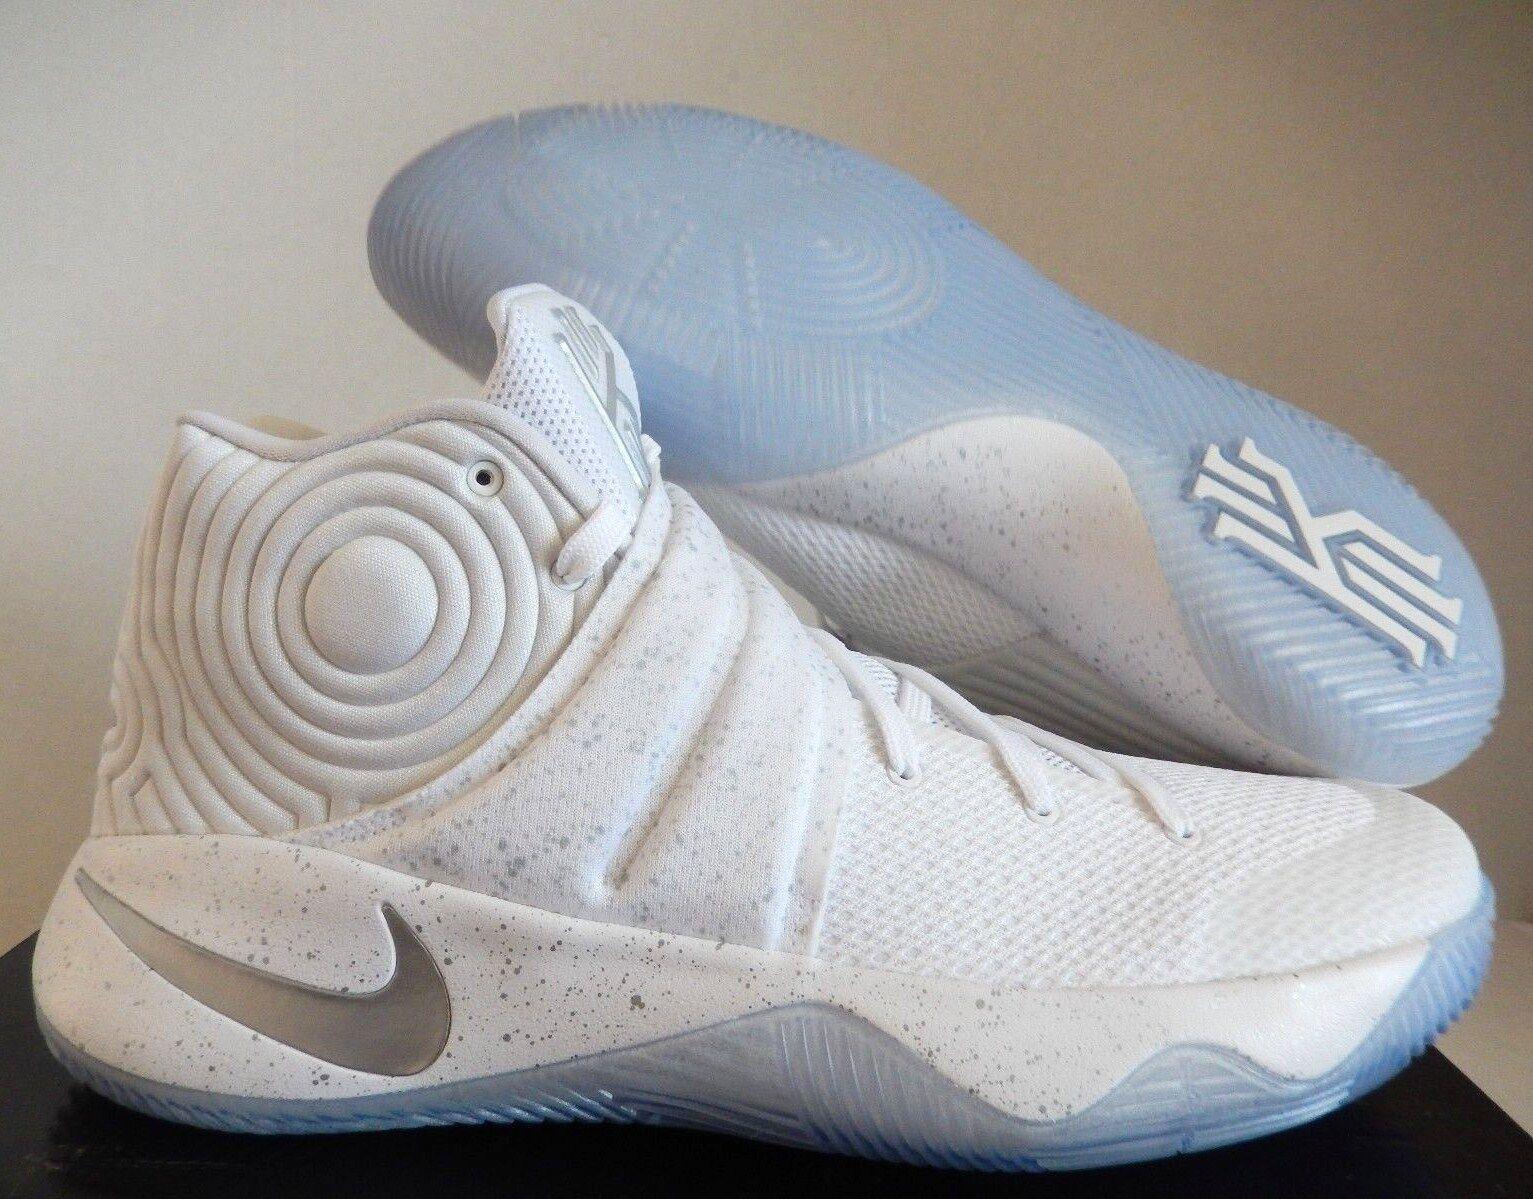 NIKE MEN KYRIE 2 WHITE-METALLIC SILVER SPECKLE Price reduction Cheap and beautiful fashion